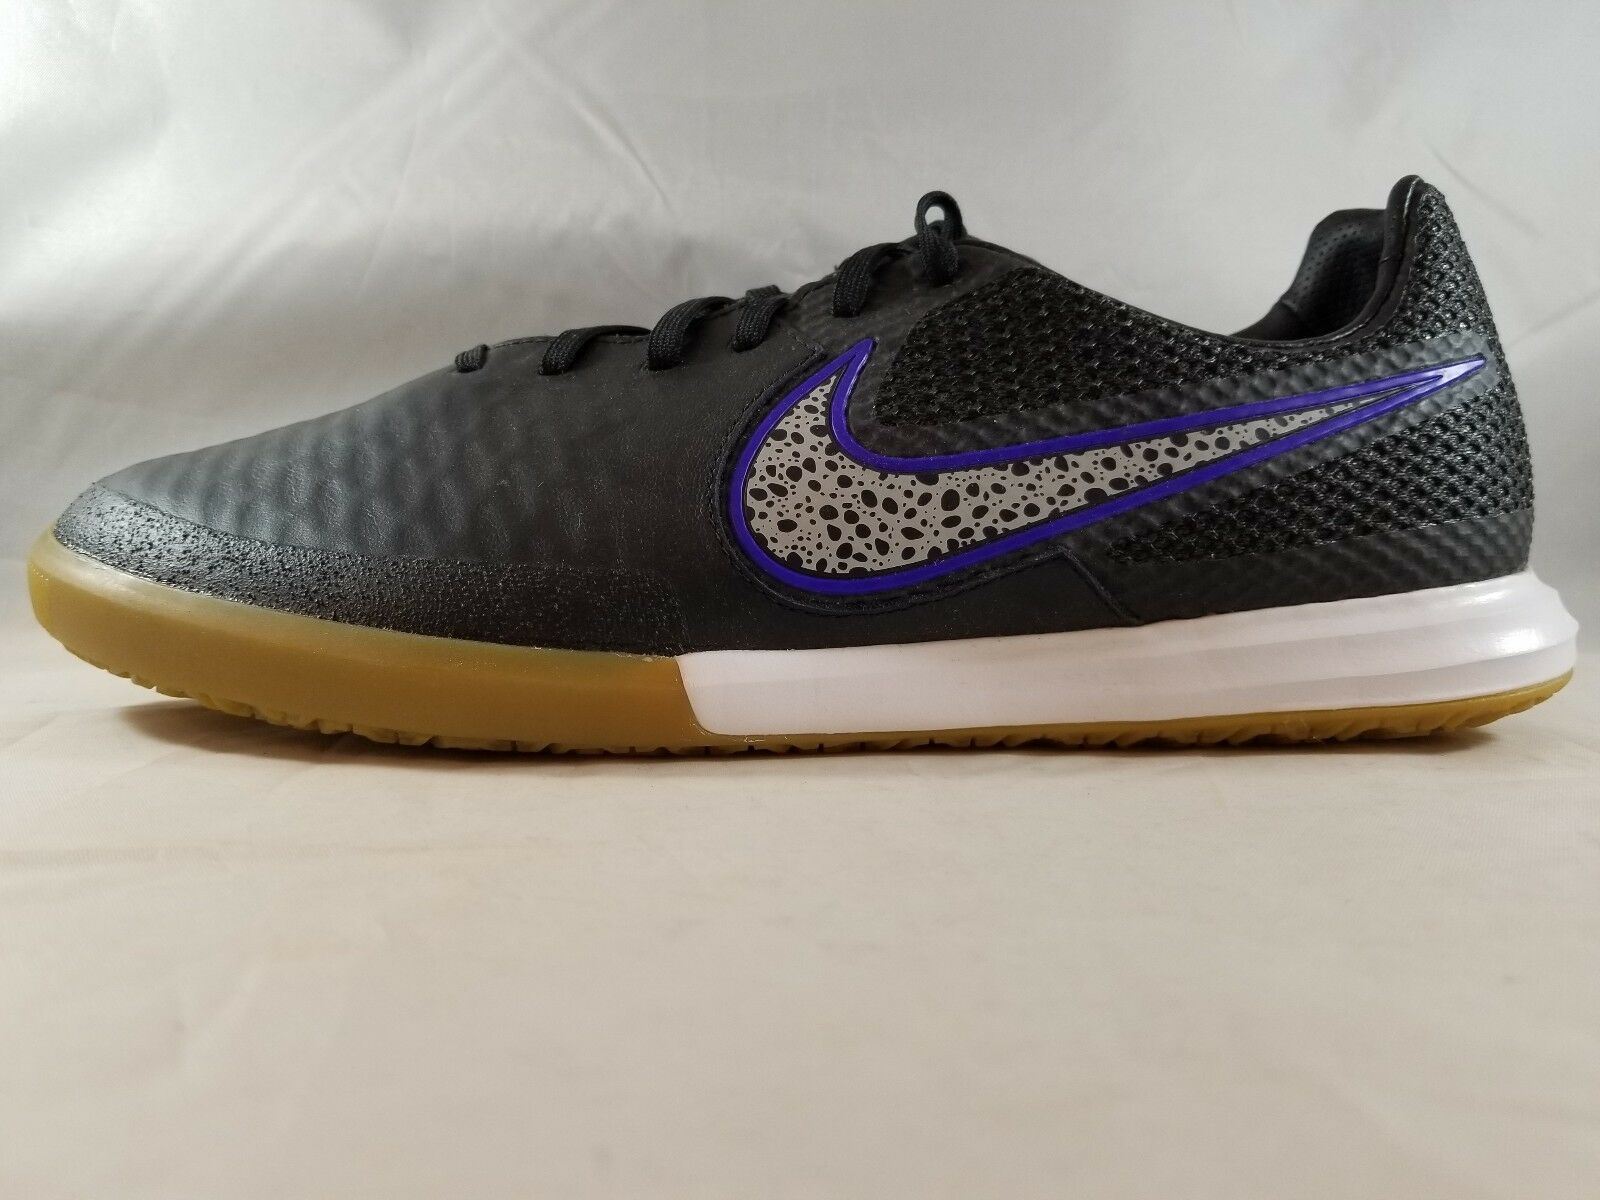 Nike Magistax Finale IC Men's Lifestyle shoes 807568 005 Size 11